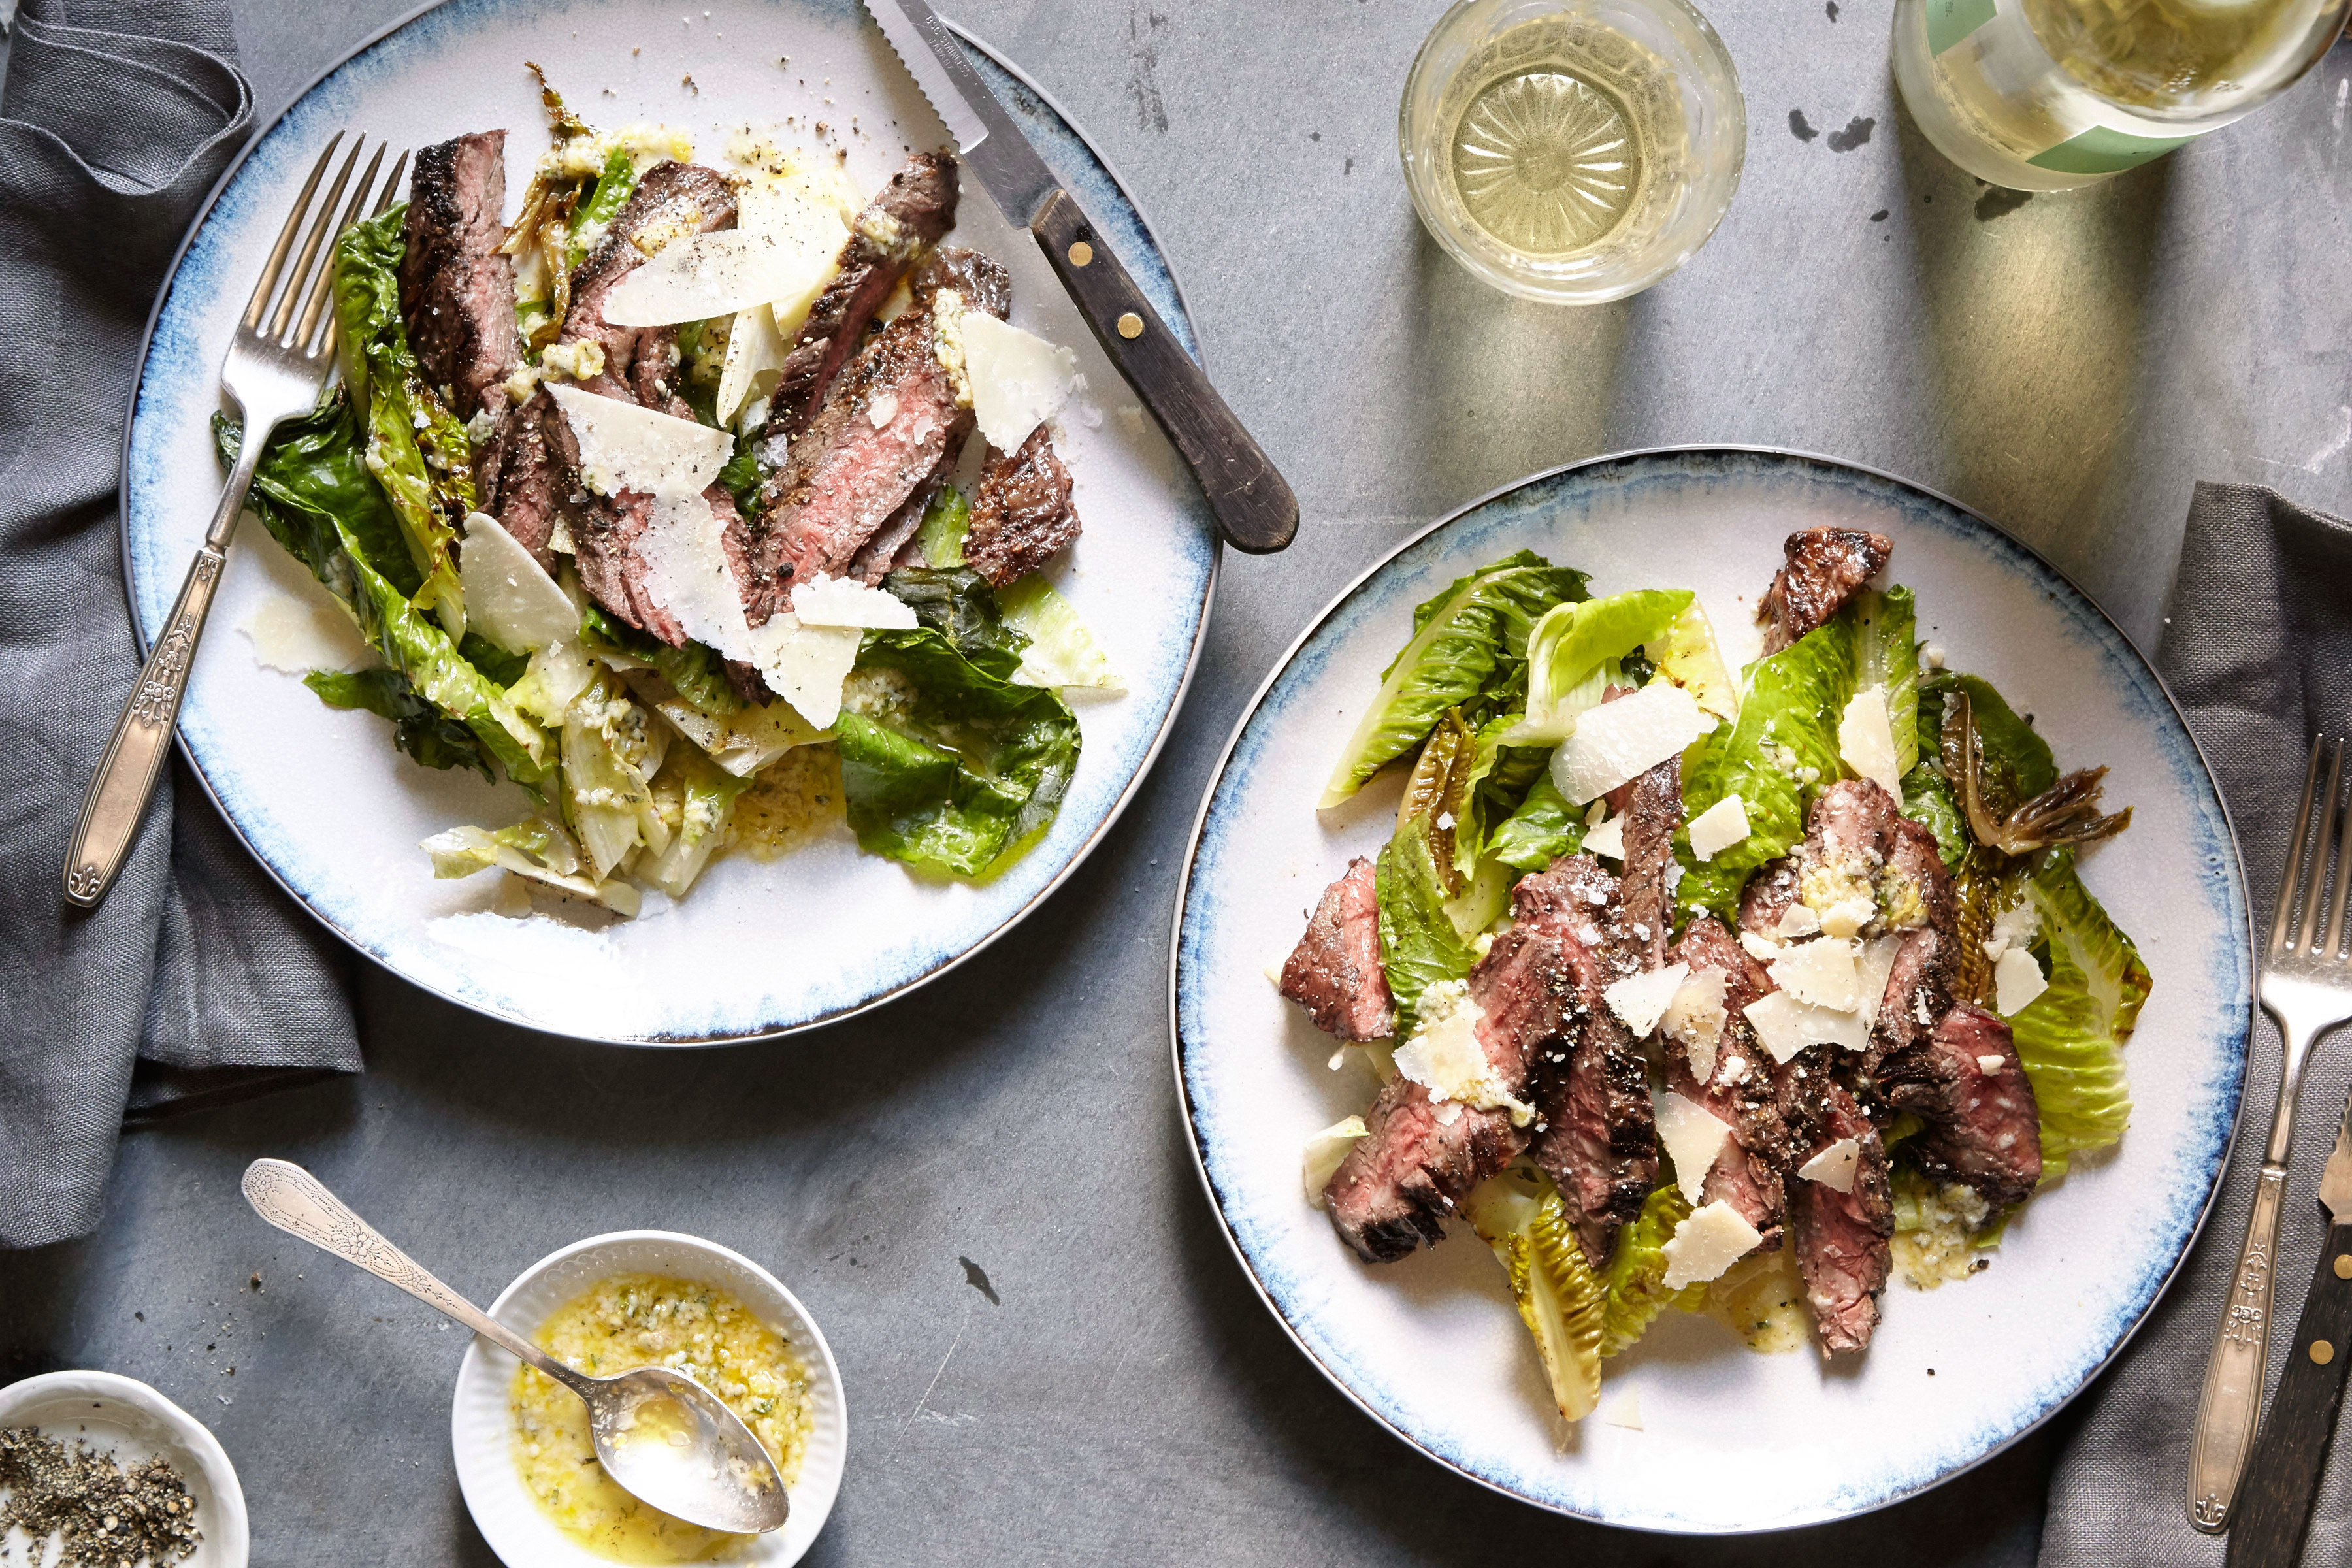 Grilled romaine and skirt steak salad